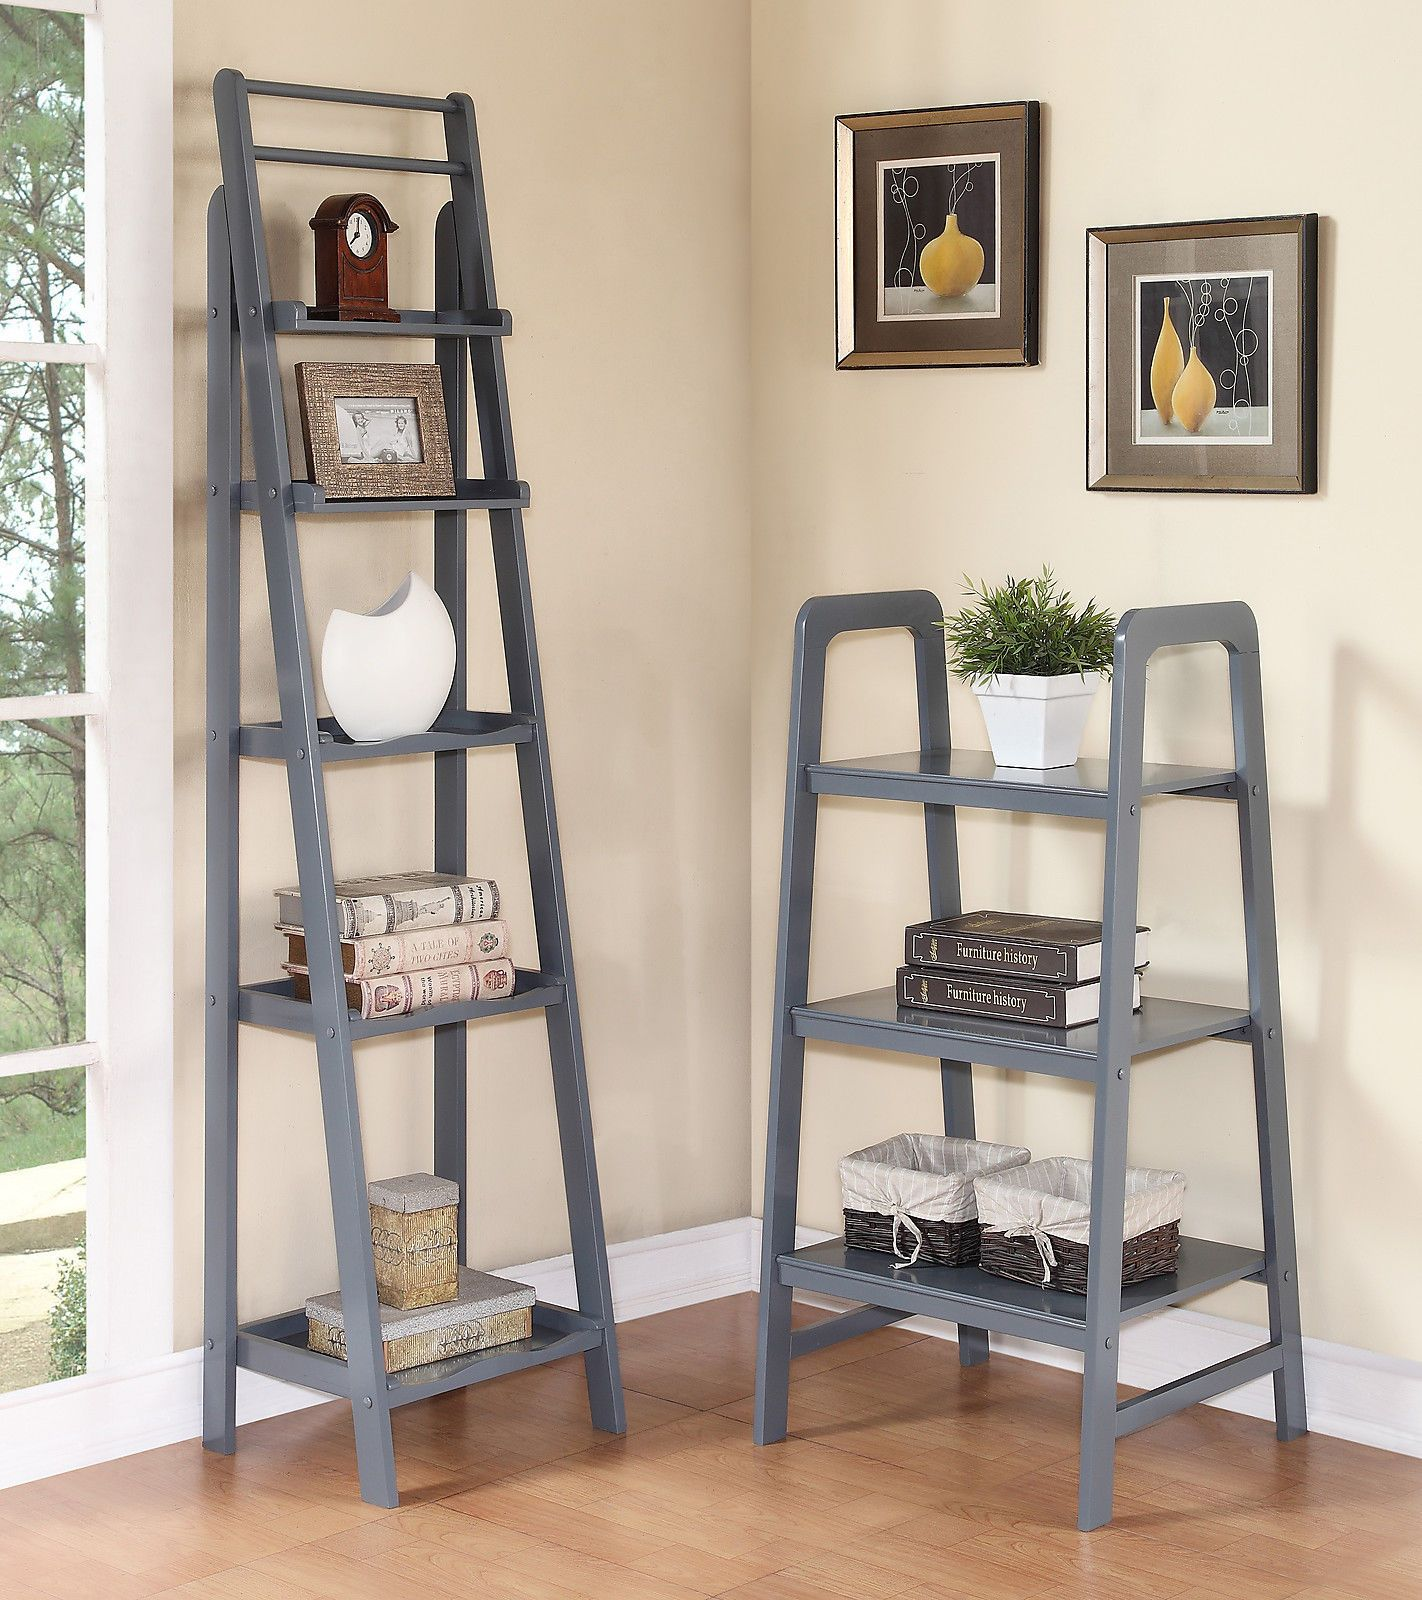 Modern Wood Ladder Rack Display Shelf Bookcase In Blue Gray